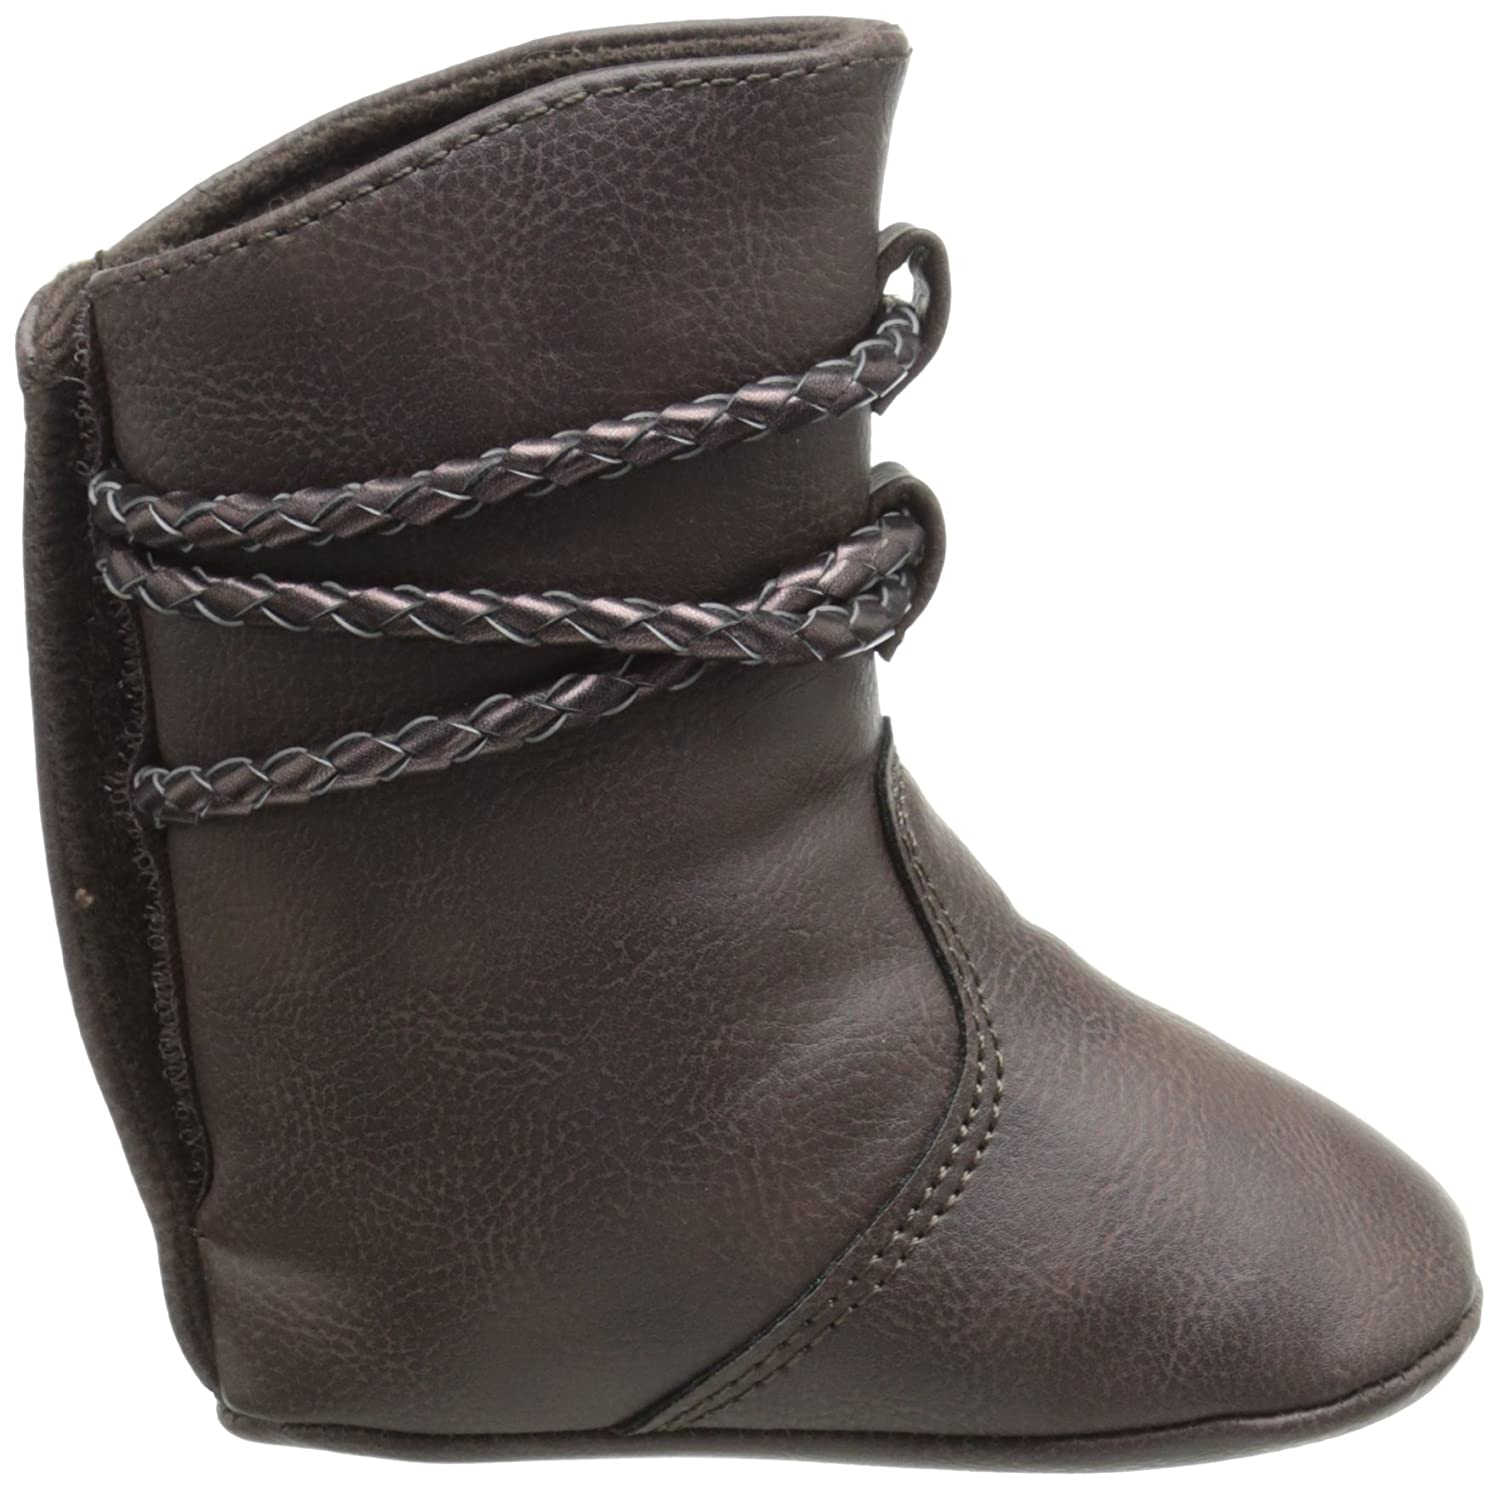 Infant Natural Steps Lil Clementine Fashion Boot